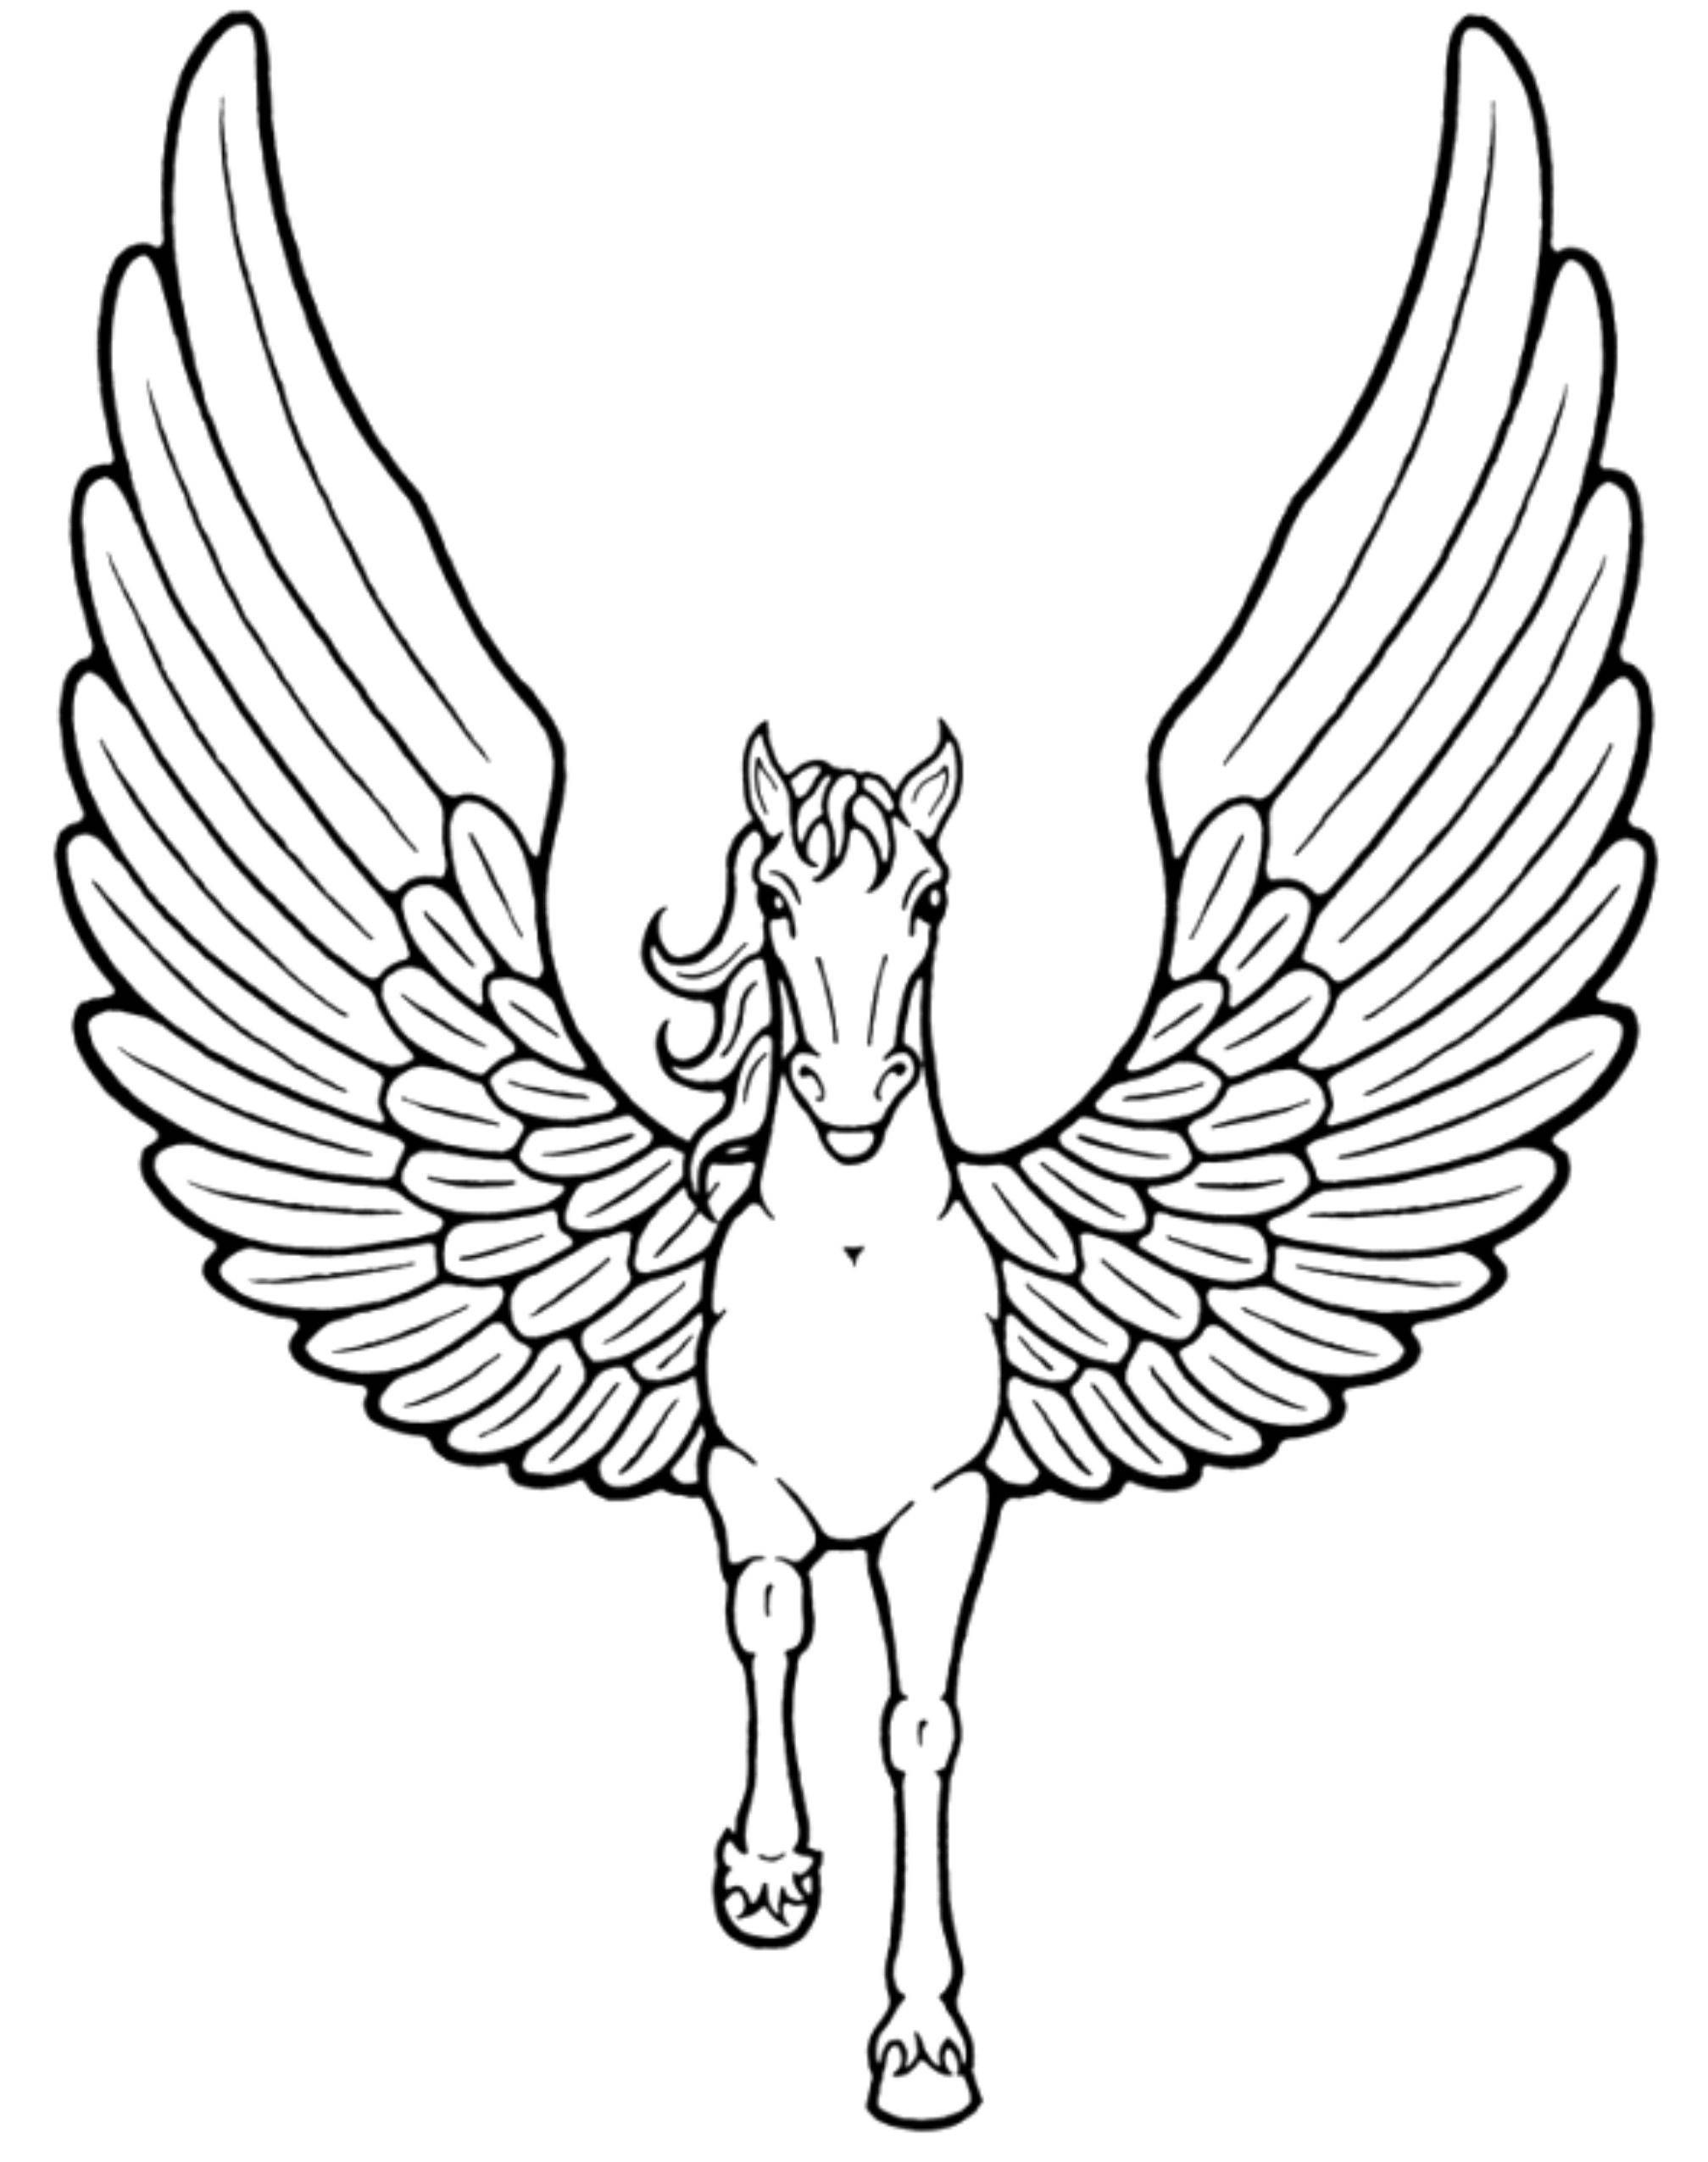 Free Coloring Pages Of Unicorn U Is For Unicorn Voteforverde Com Horse Coloring Pages Animal Coloring Pages Horse Coloring